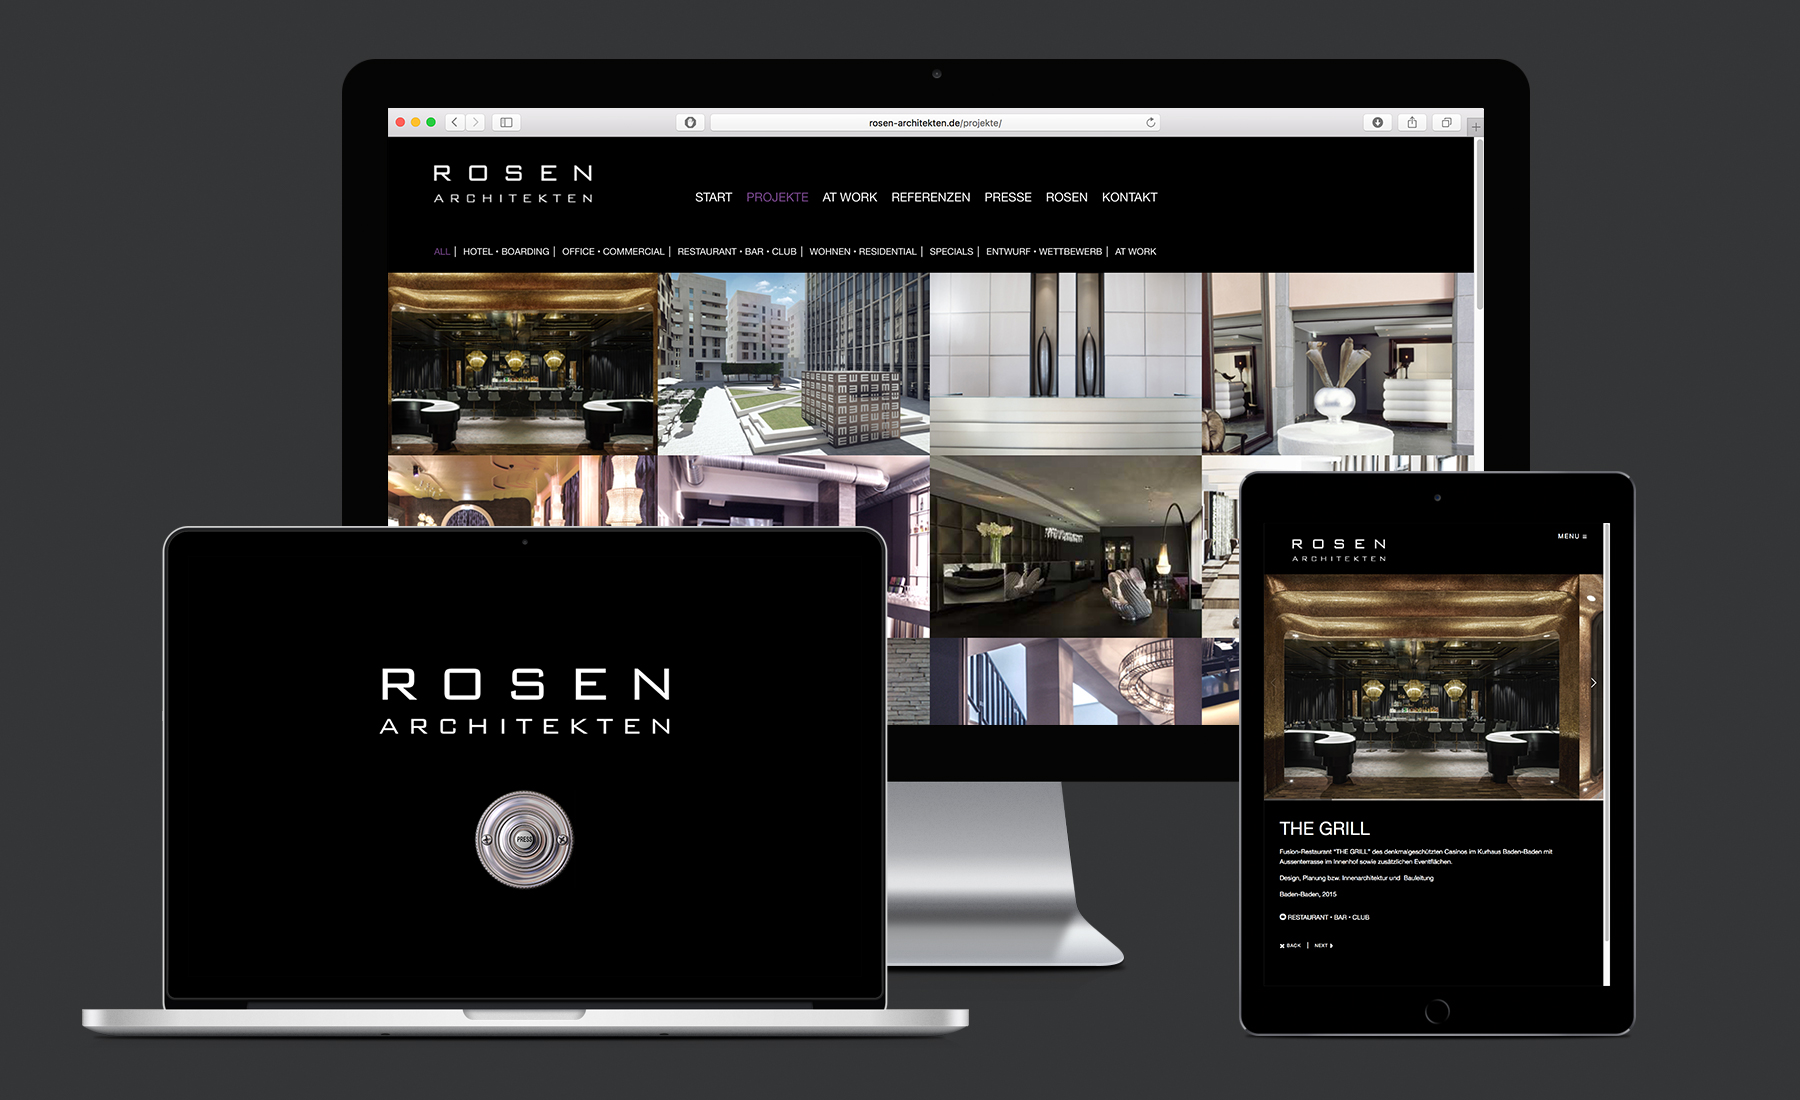 Rosen Architekten Website